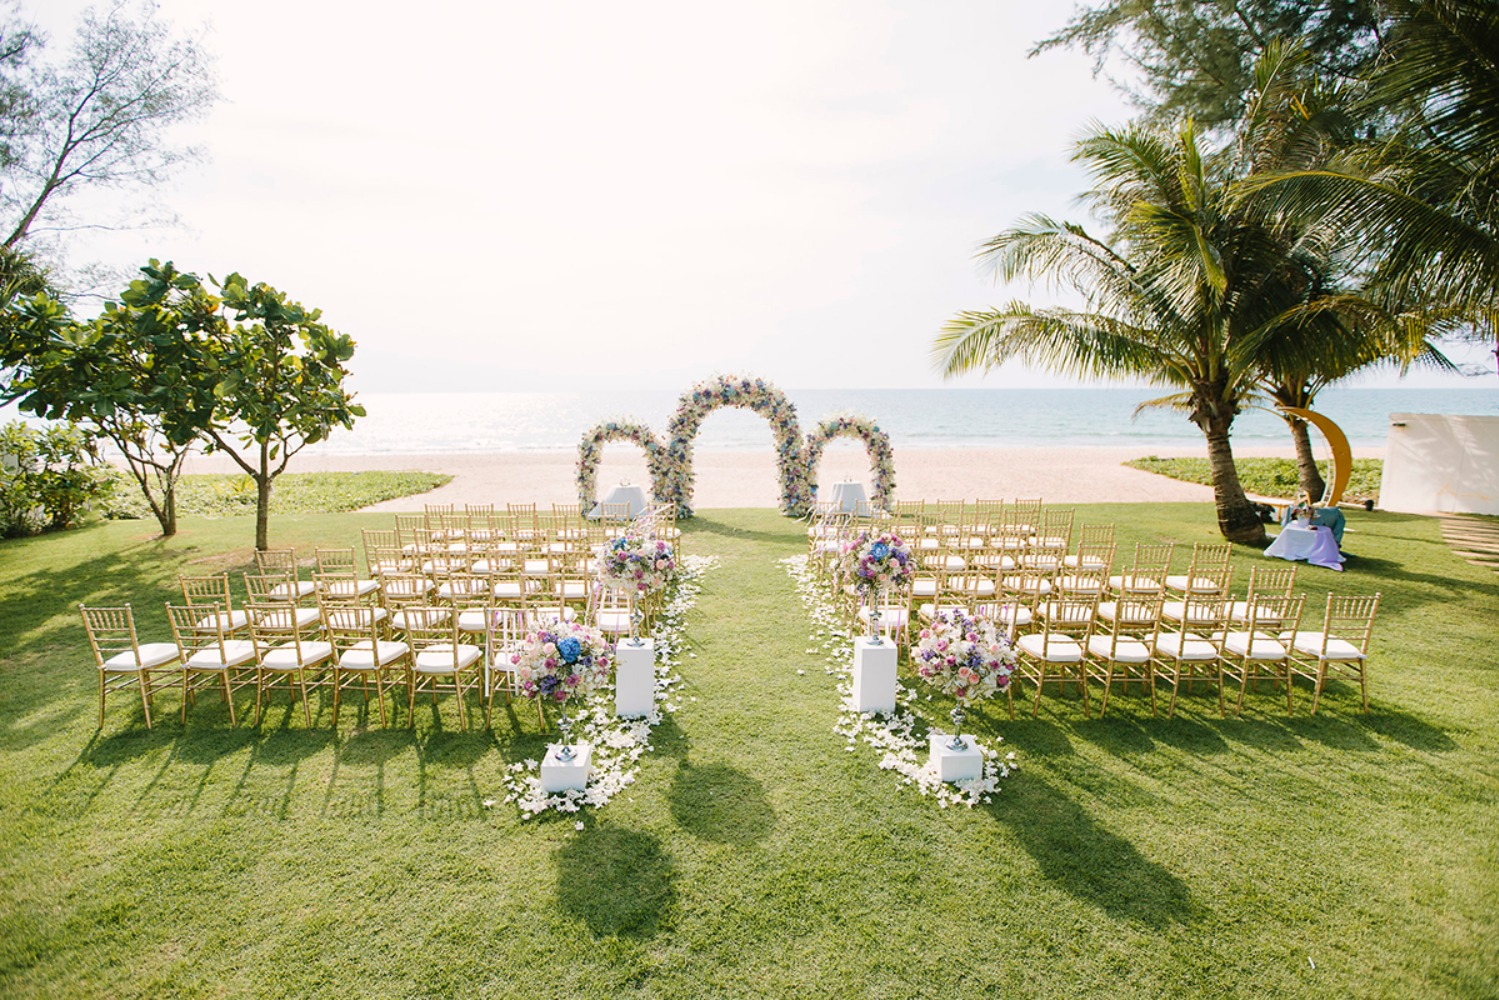 Beautiful double wedding by the beach in Phuket